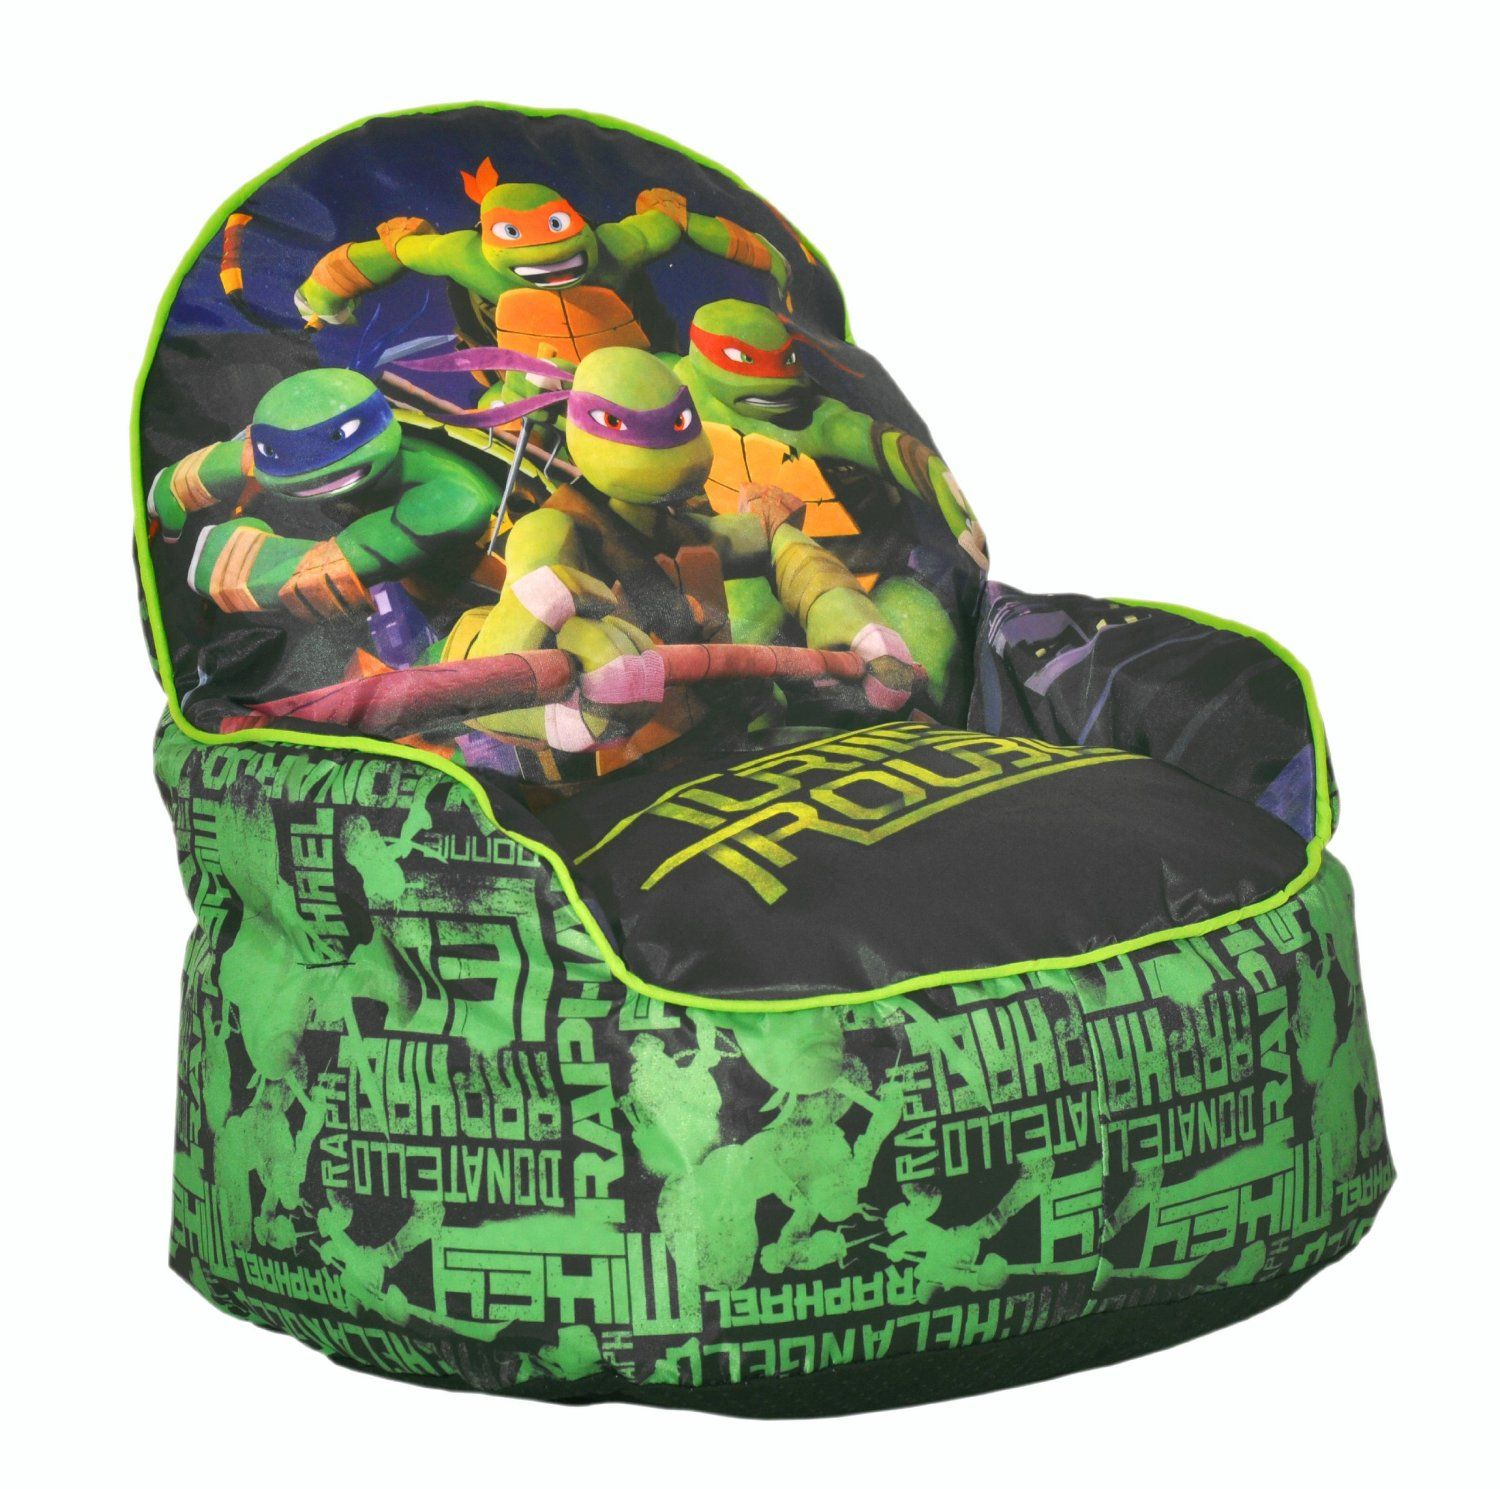 Teenage Mutant Ninja Turtles Bean Bag Chair TMNT